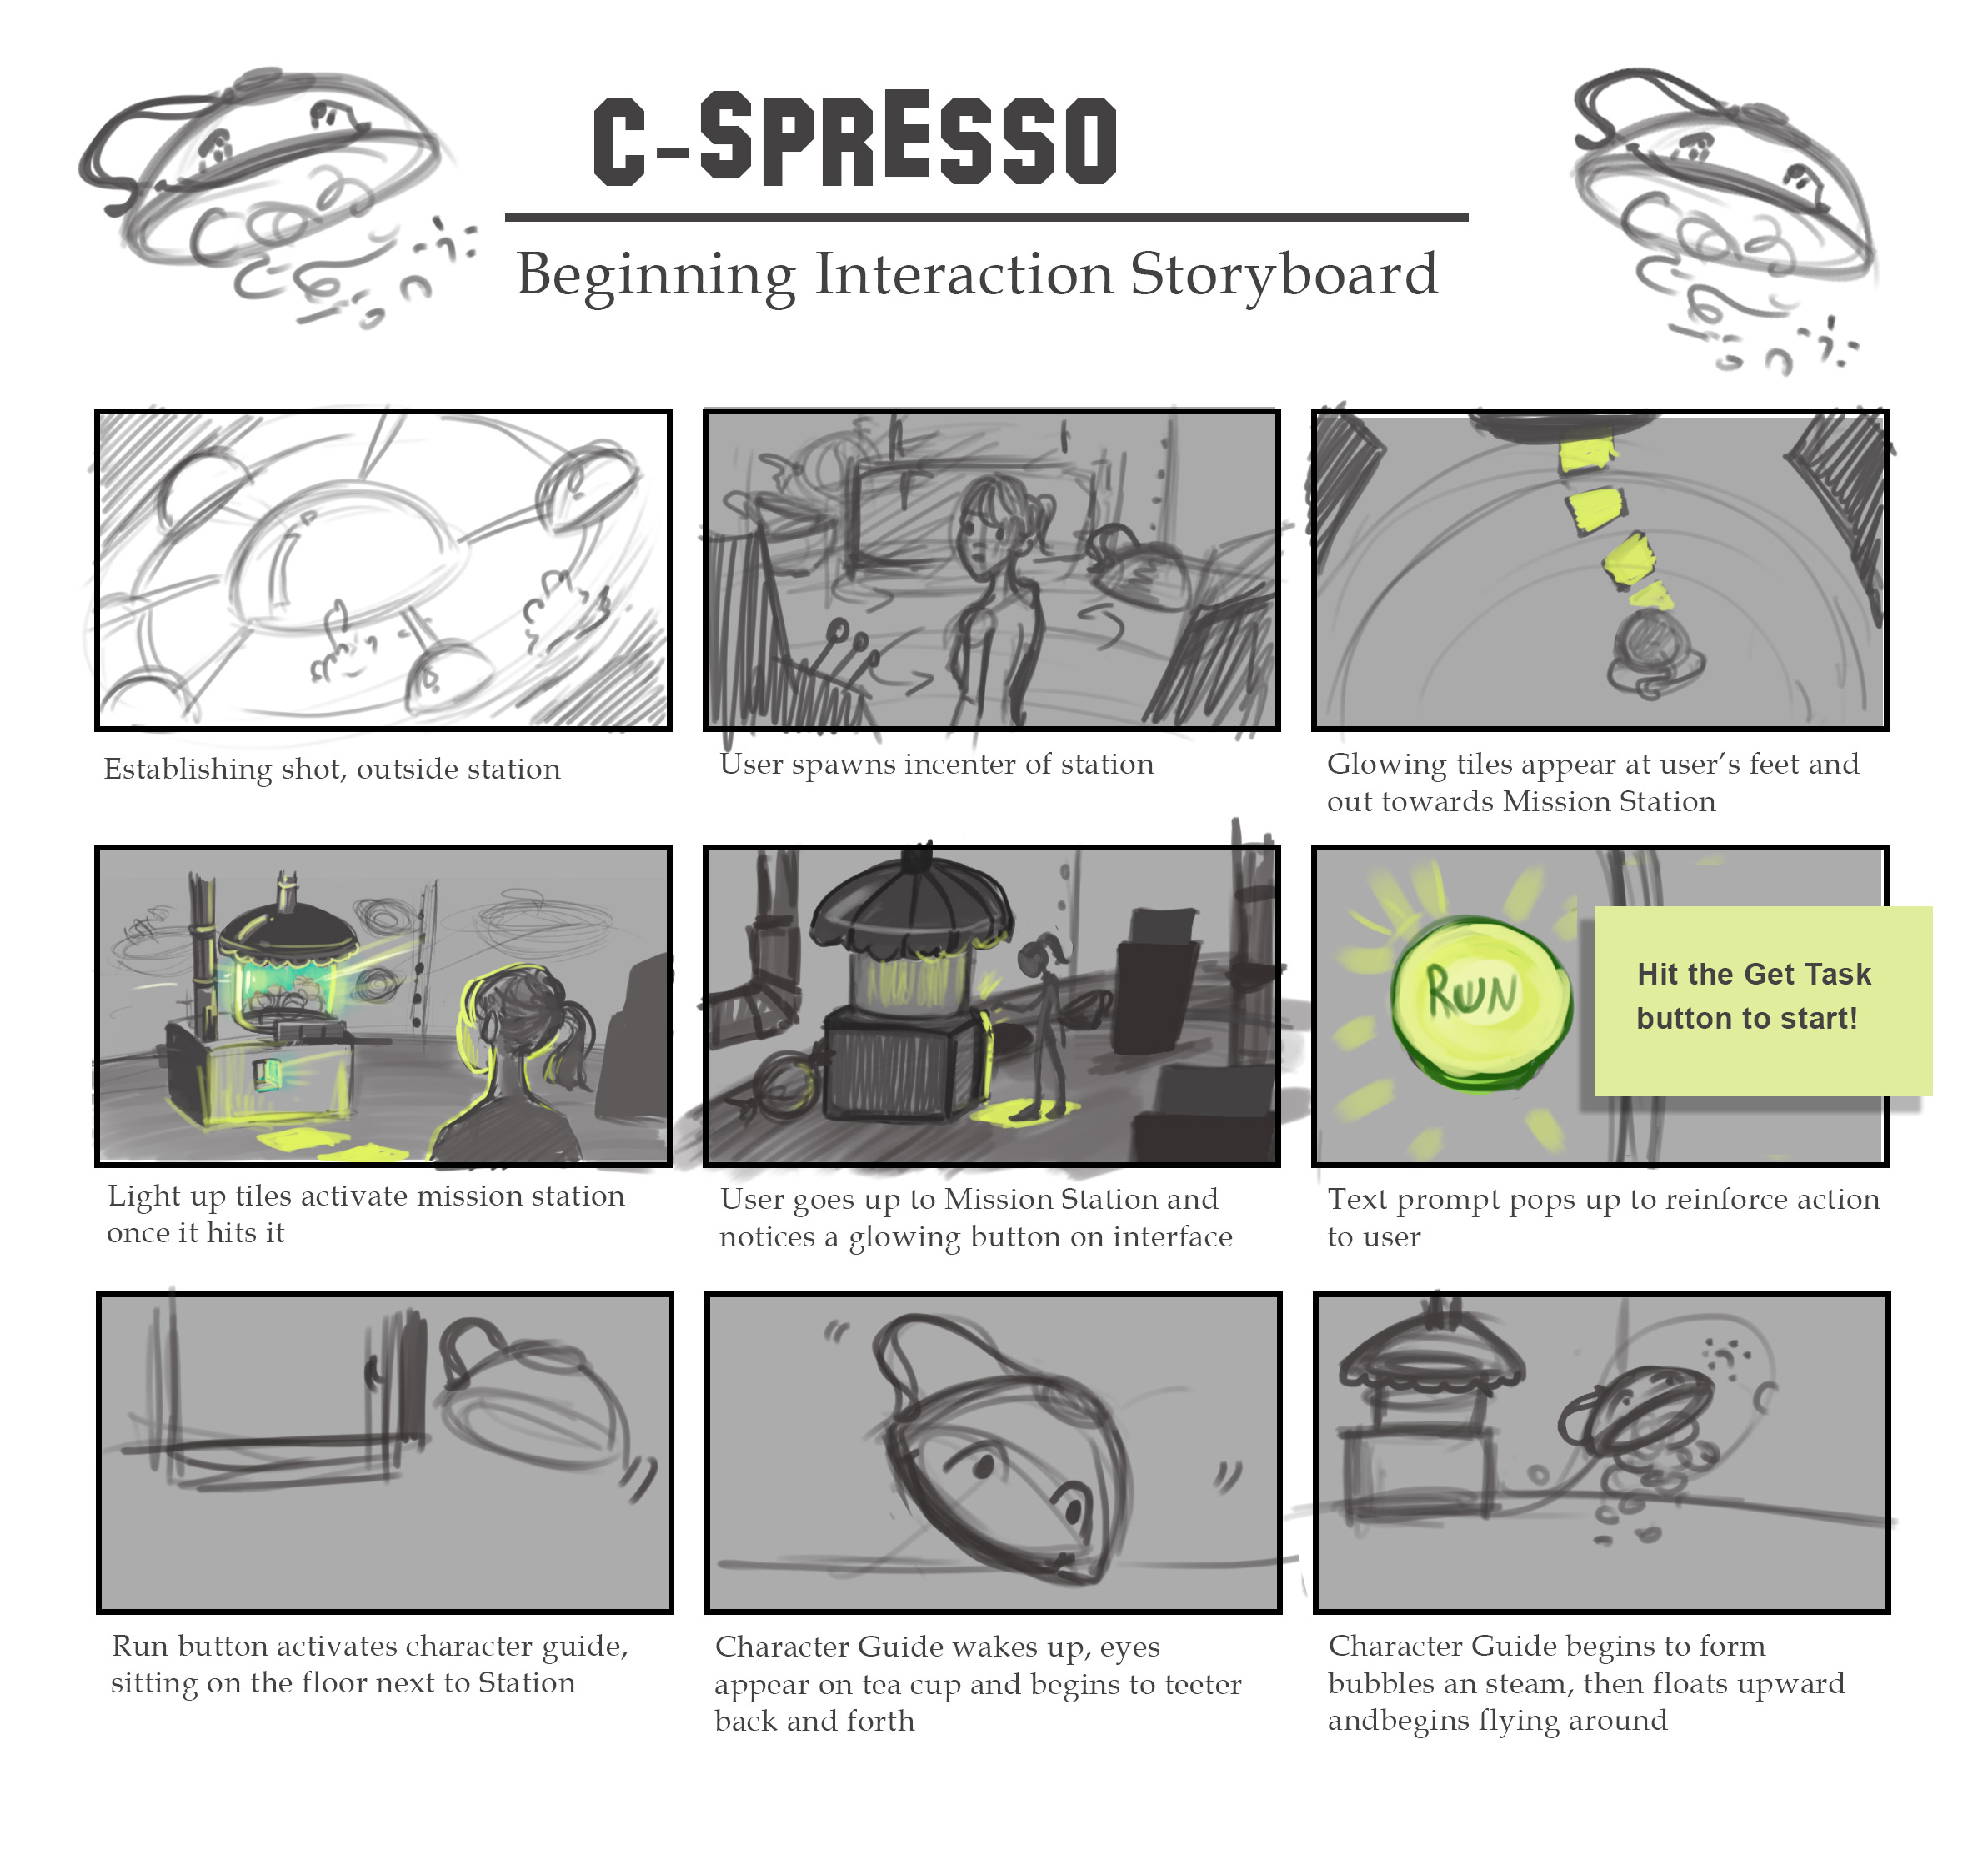 Storyboard by Jessica Ross Nersesian